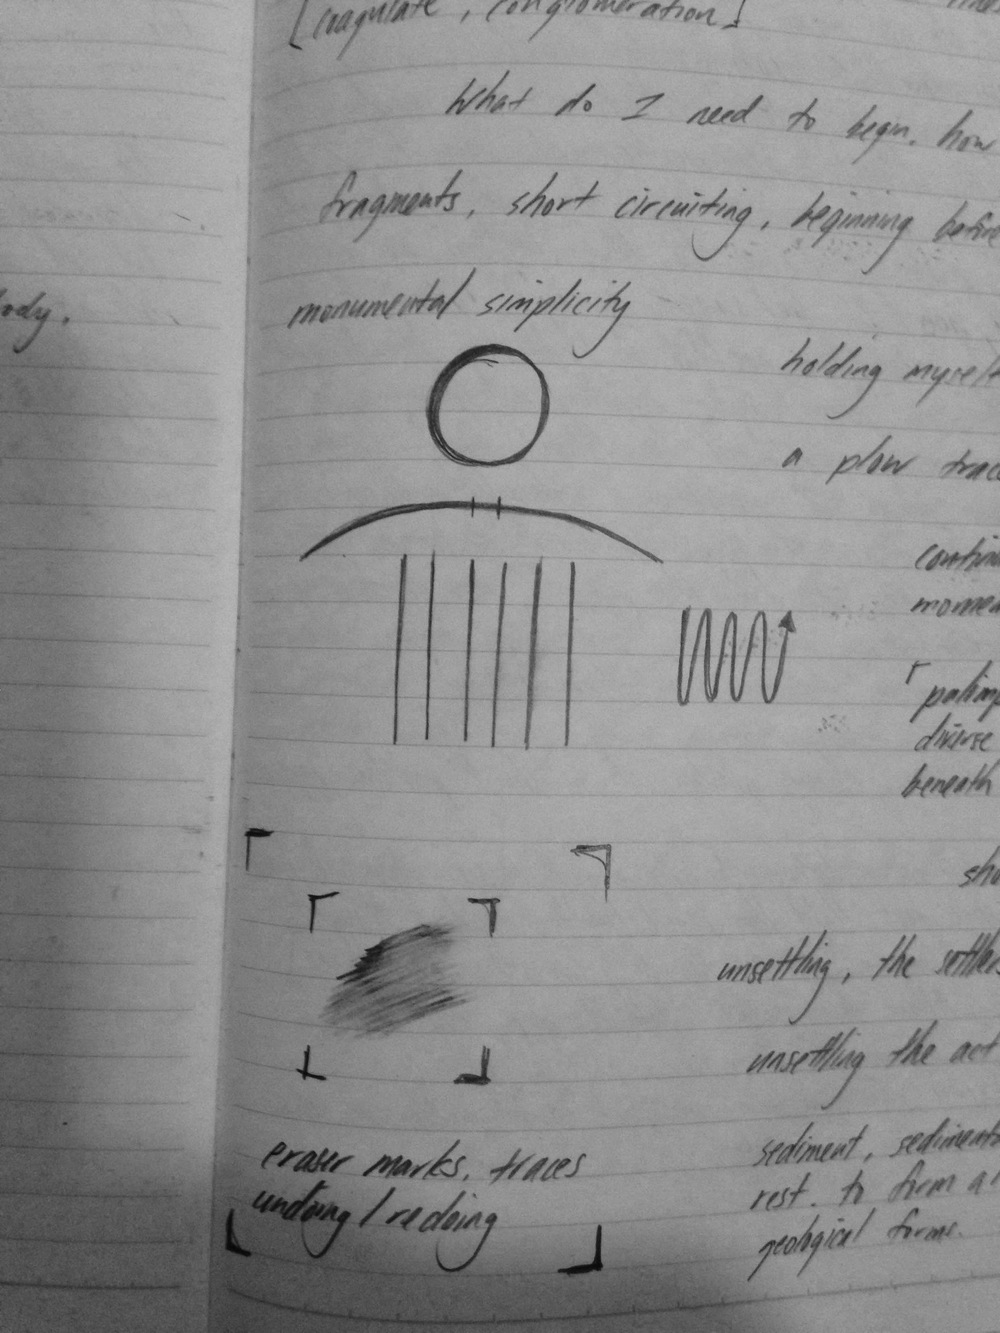 image drawn thinking of the yoke of the shoulders, the head, the fields, and an unending line as in the Boustrophedon. (School Notebook)